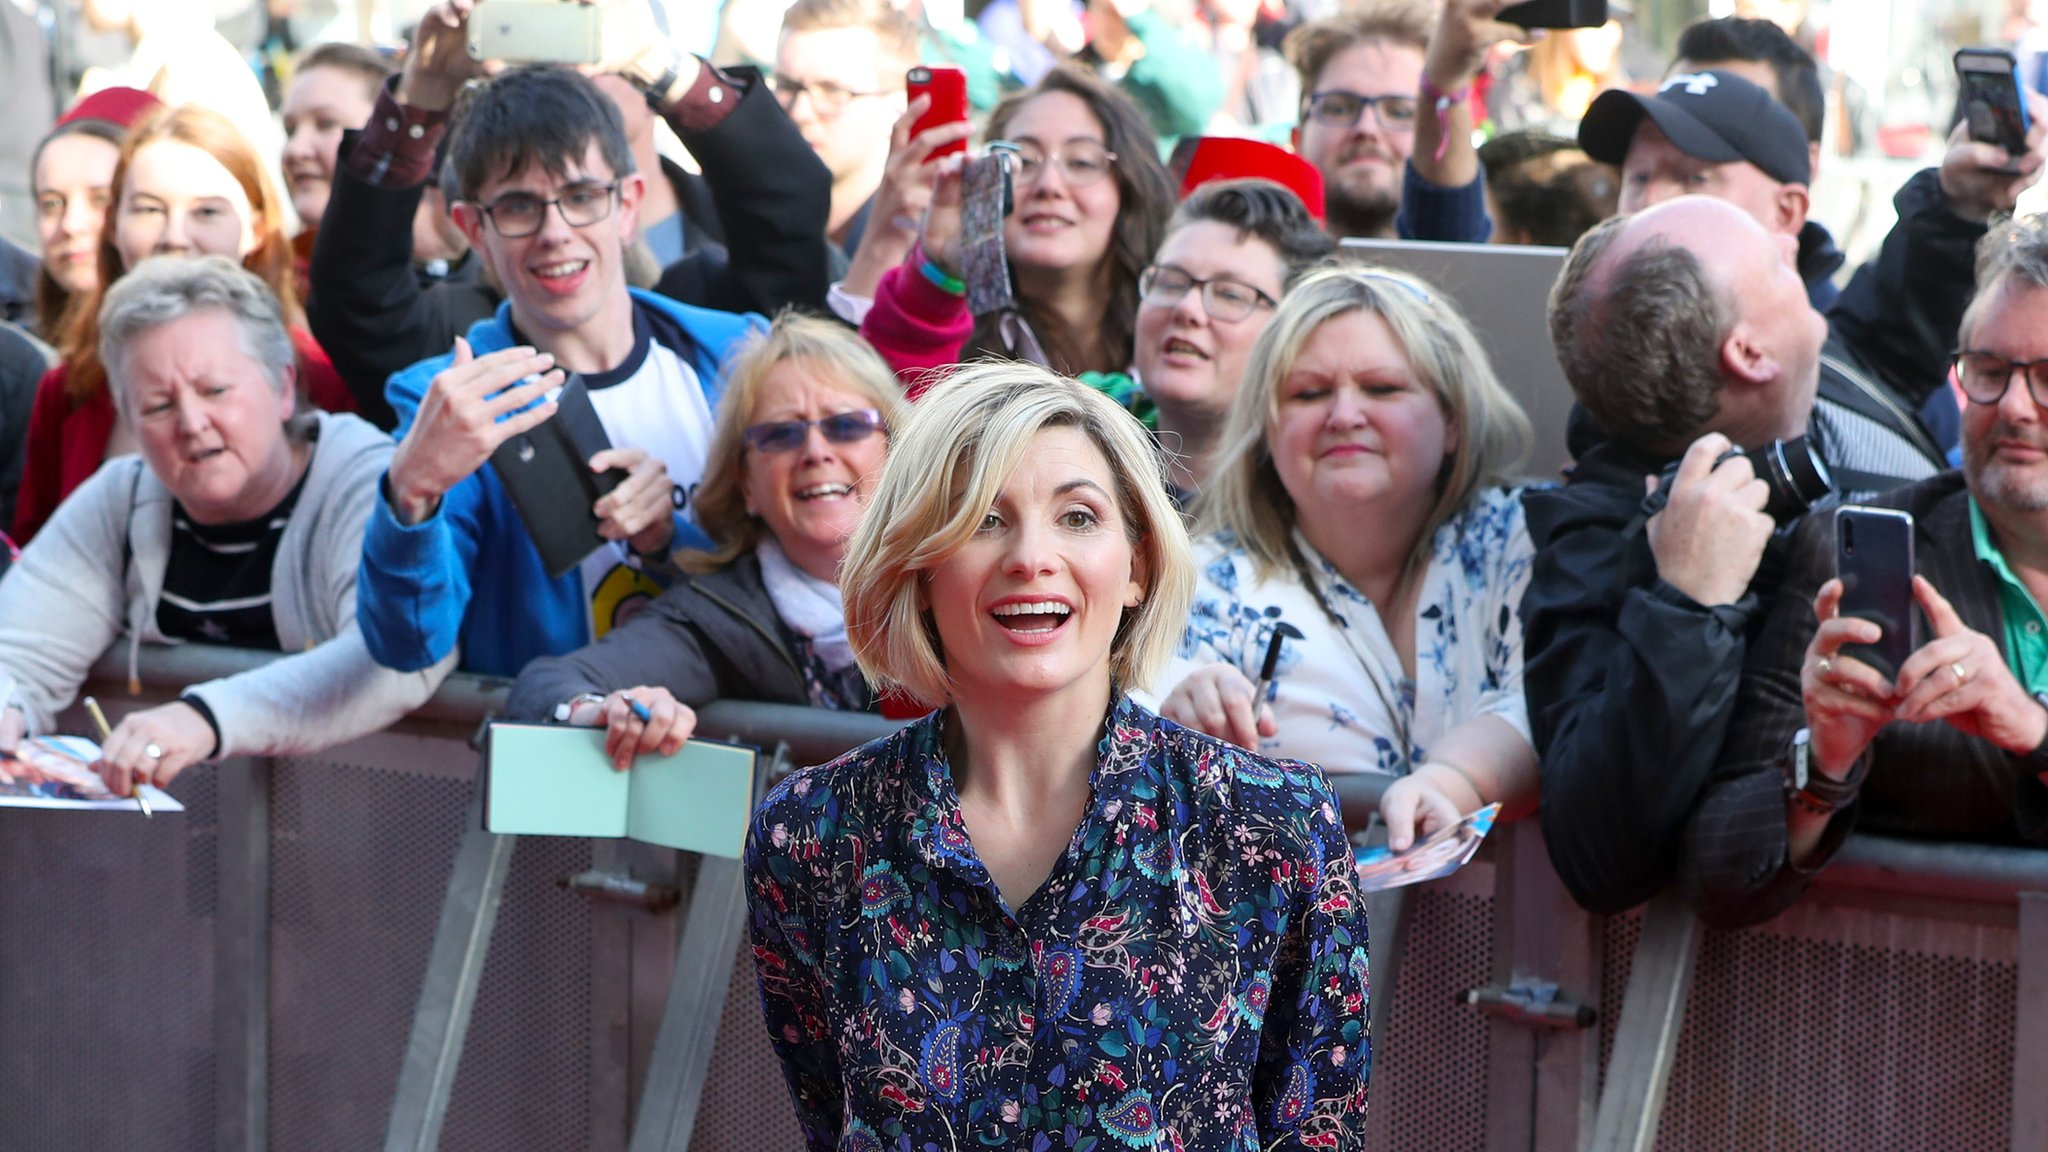 Doctor Who: Jodie Whittaker lands in Sheffield for red carpet premiere